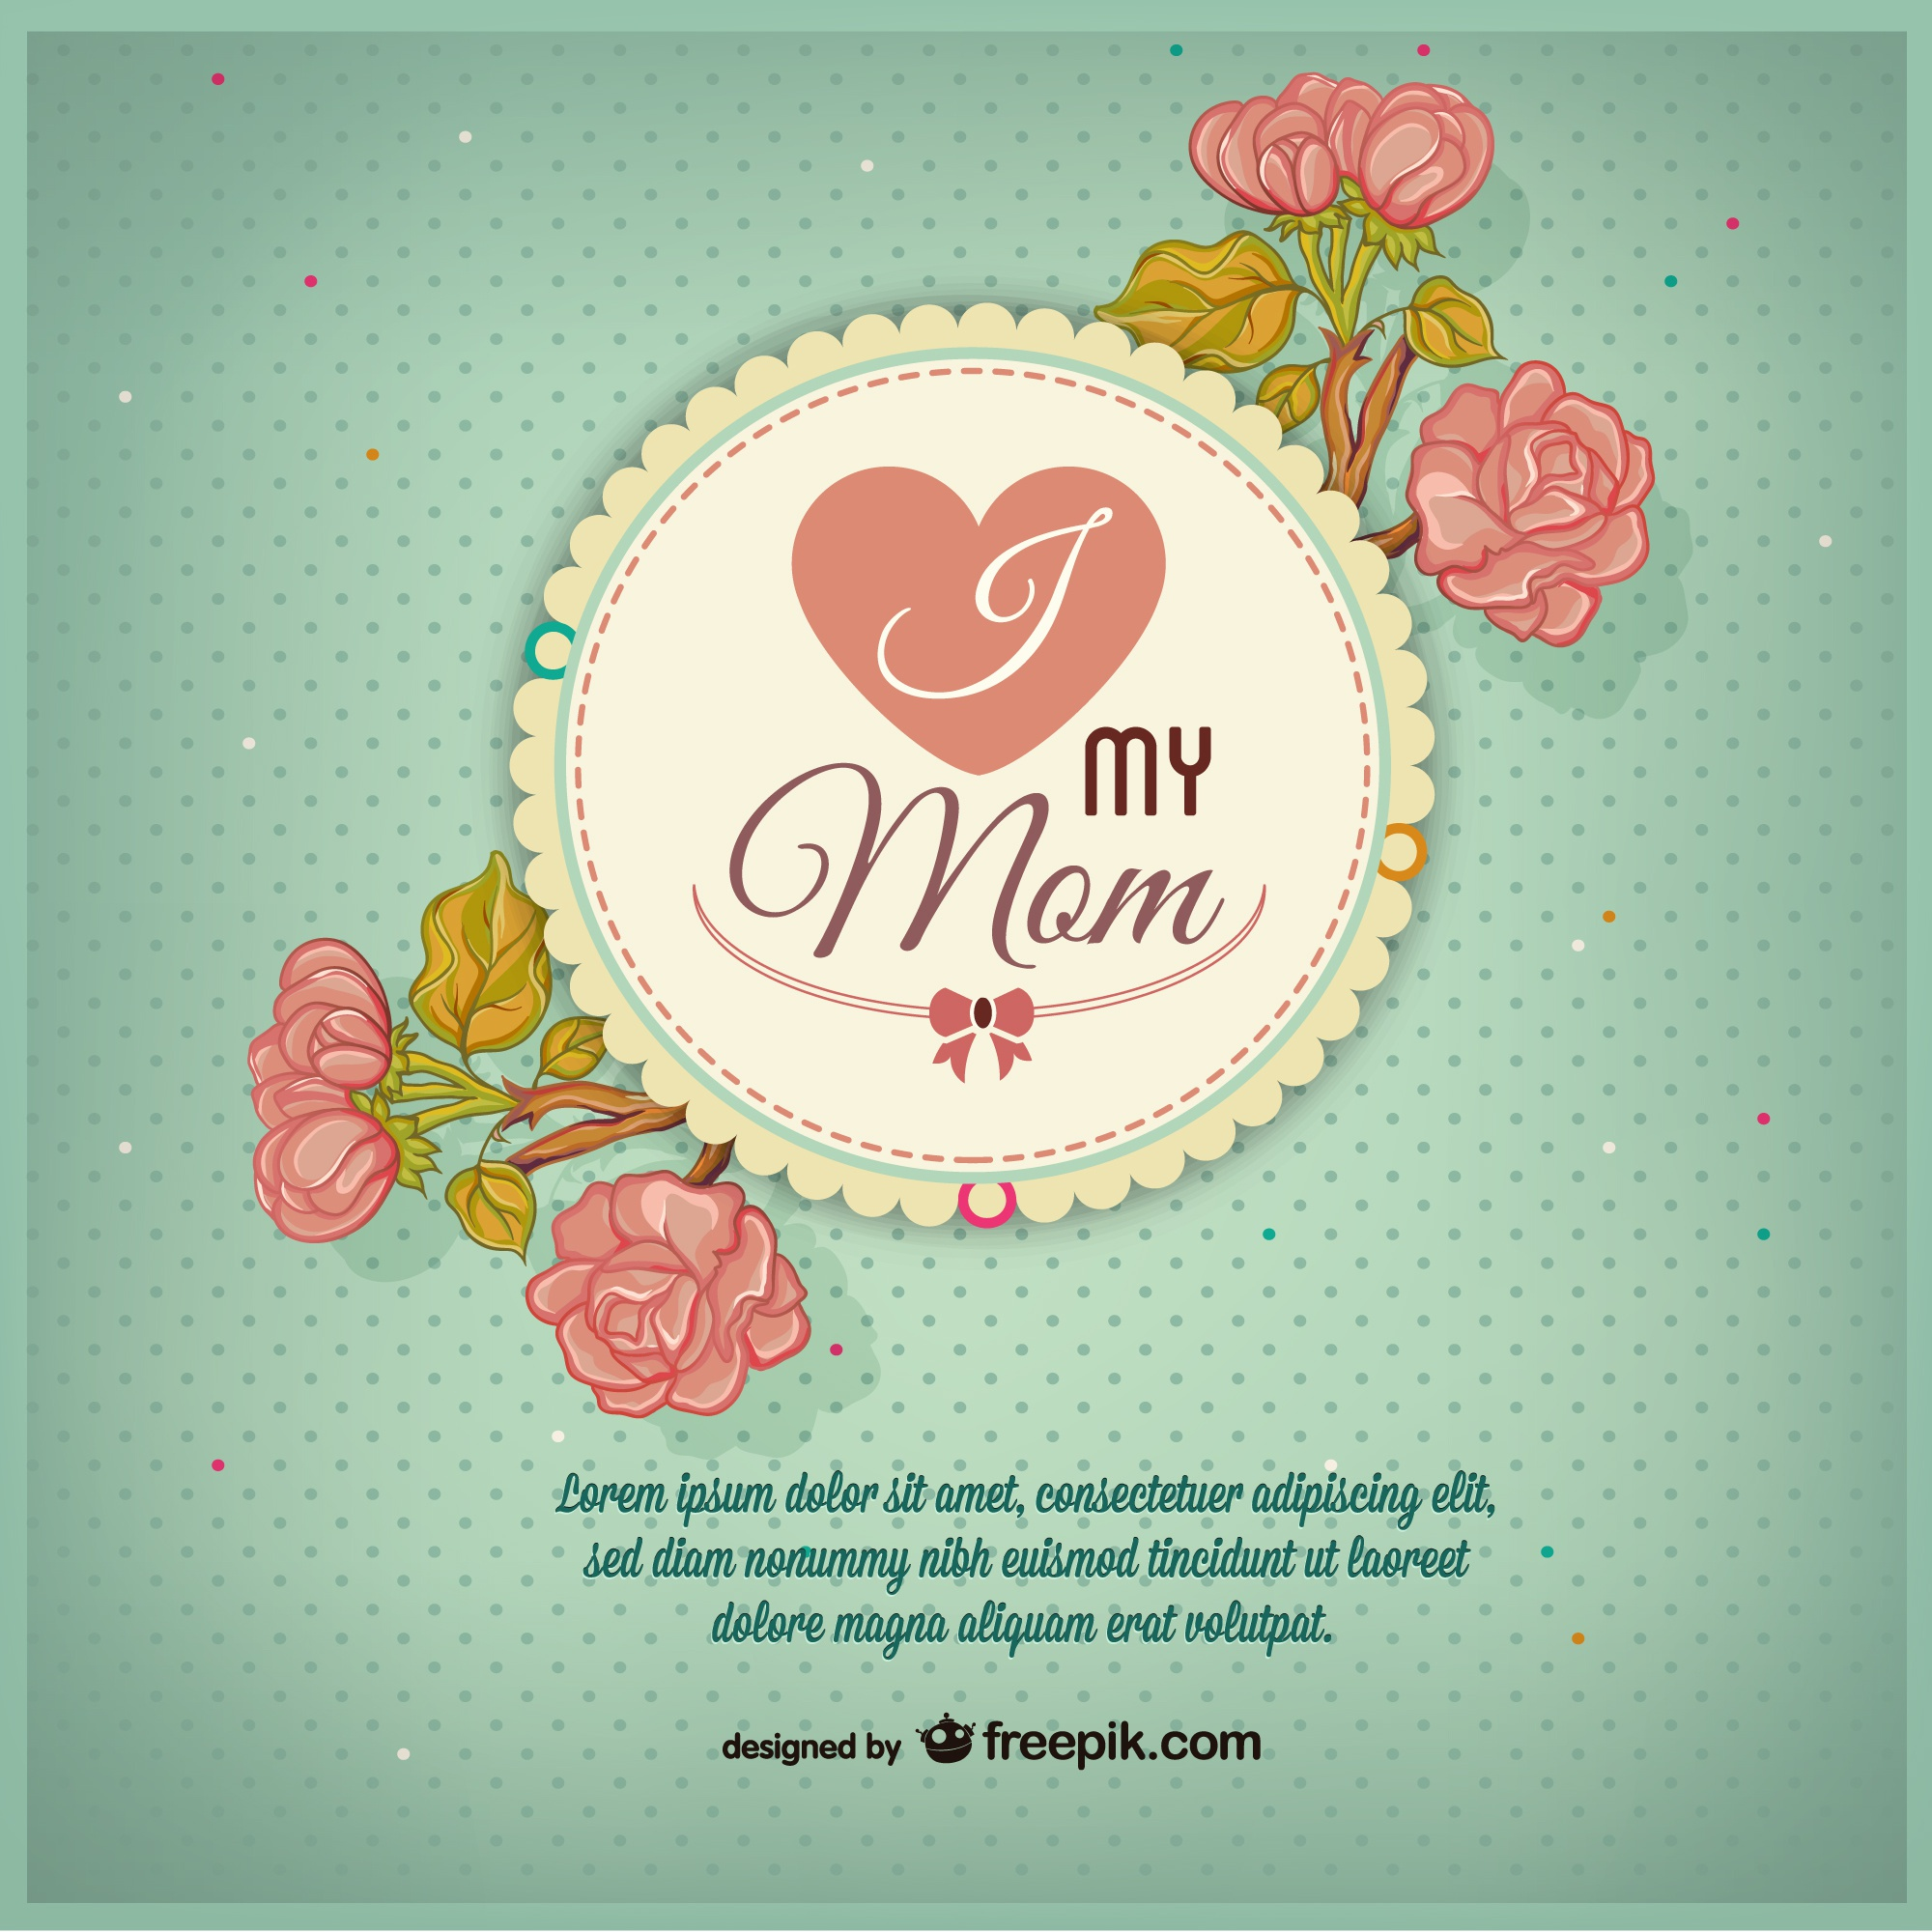 Retro mother's day free design